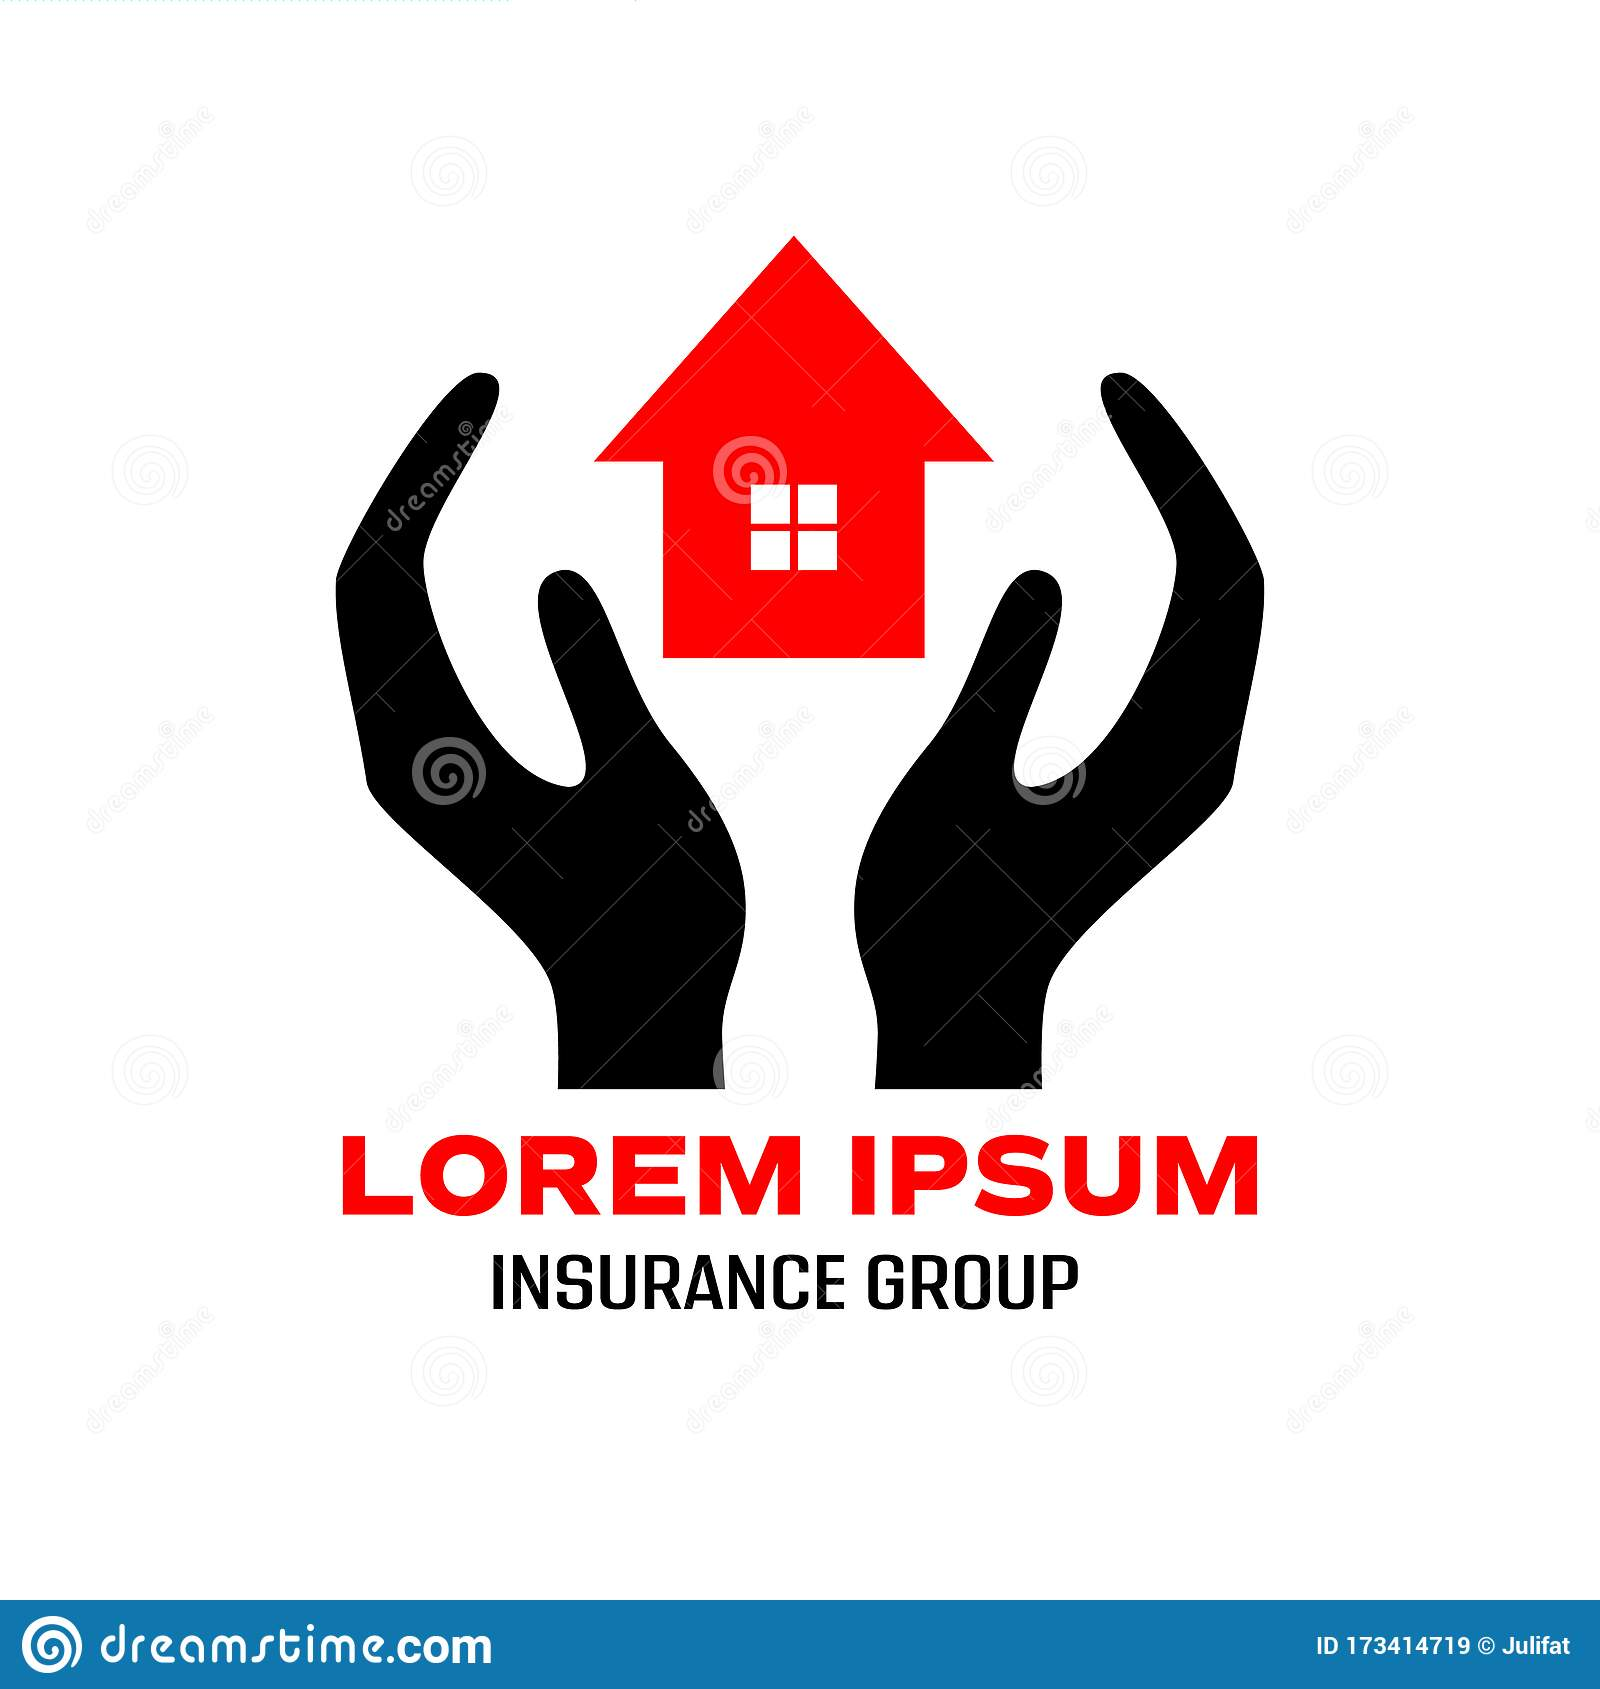 Here are a few examples: Logo For Insurance Business Business Idea Concept Vector Emblem Vector Illustration Abstract Logo Icon Design Template Modern Stock Vector Illustration Of Assurance Health 173414719